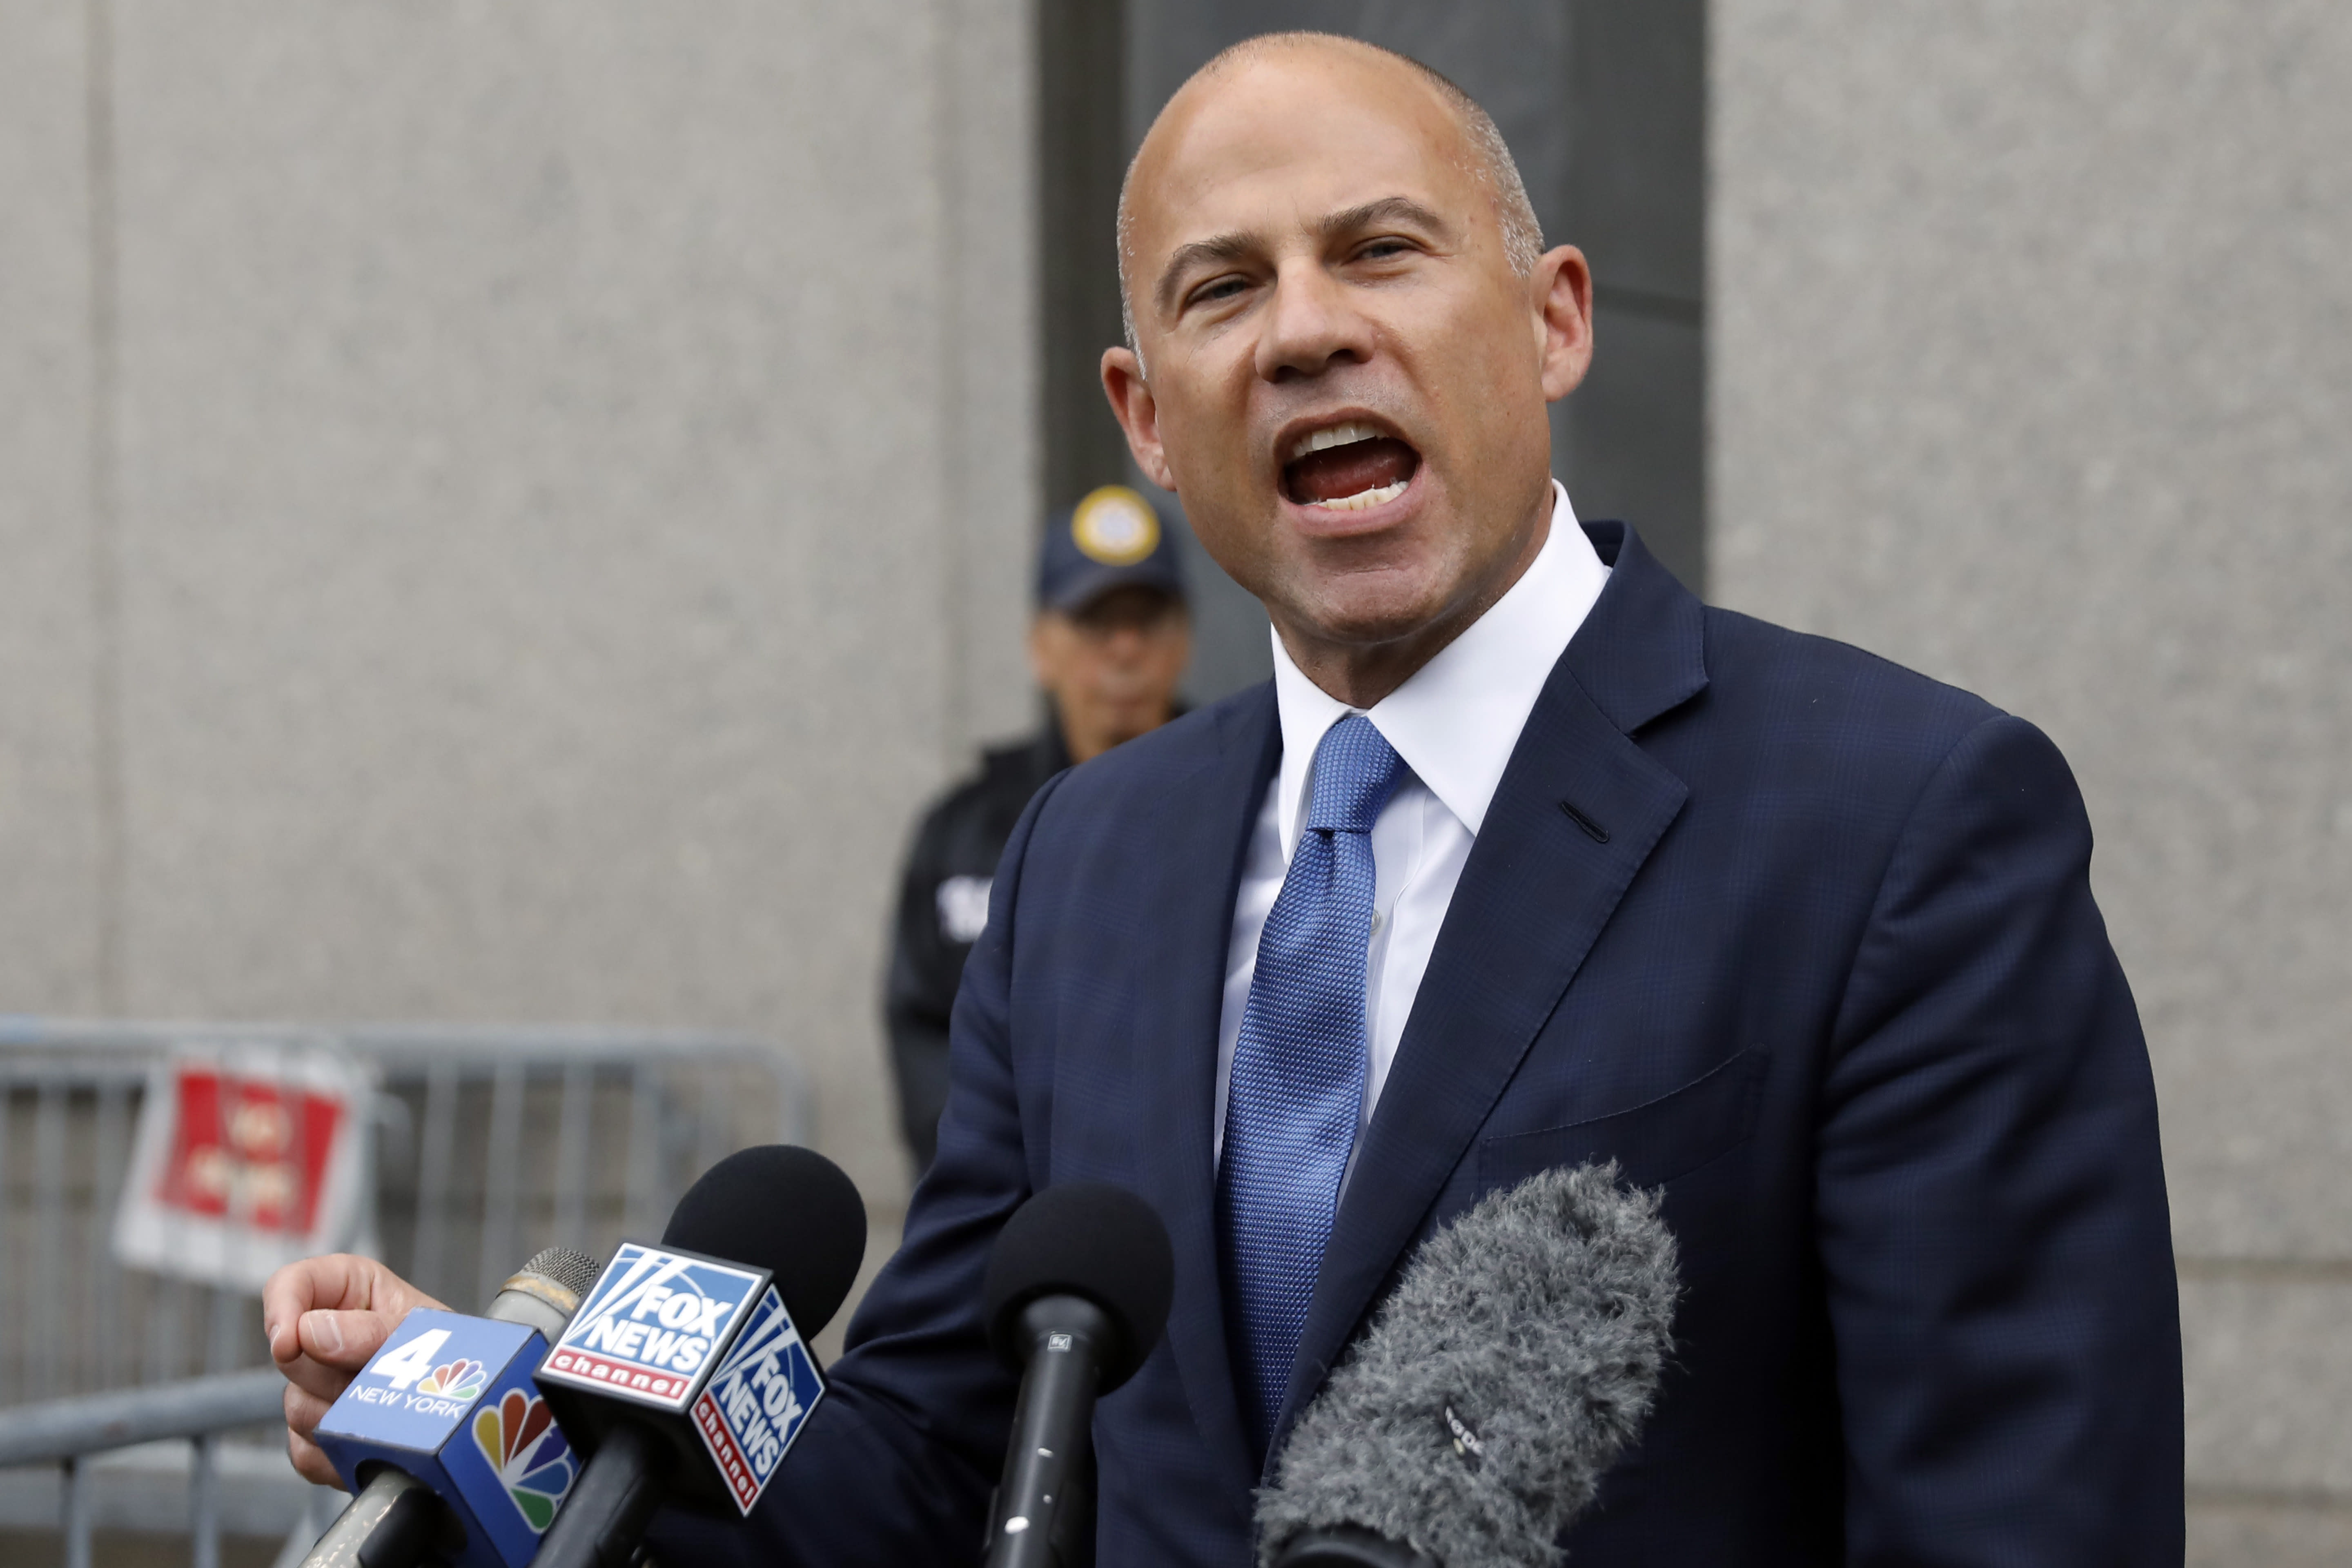 FILE - In this Tuesday, July 23, 2019 file photo, Michael Avenatti makes a statement to the press as he leaves federal court, in New York. Lawyer Michael Avenatti says charging Nike $25 million to probe corruption at the sportswear giant was a bargain rather than extortion. An attorney for Avenatti told a judge Thursday, Aug. 22, 2019 that a November extortion trial should be postponed until January so he can gather more proof. (AP Photo/Richard Drew, File)